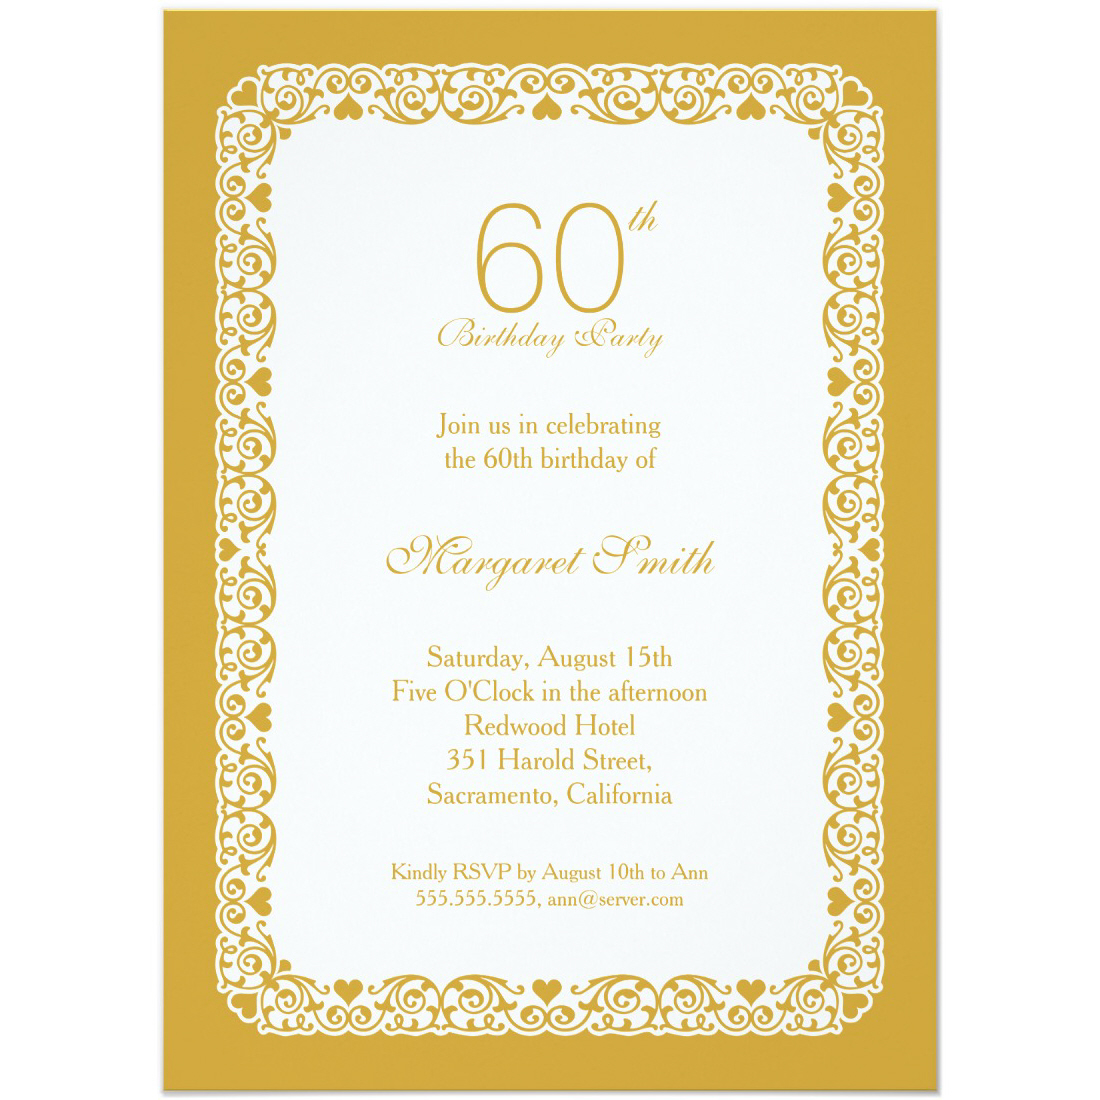 Elegant Personalized 60th Birthday Party Invitations